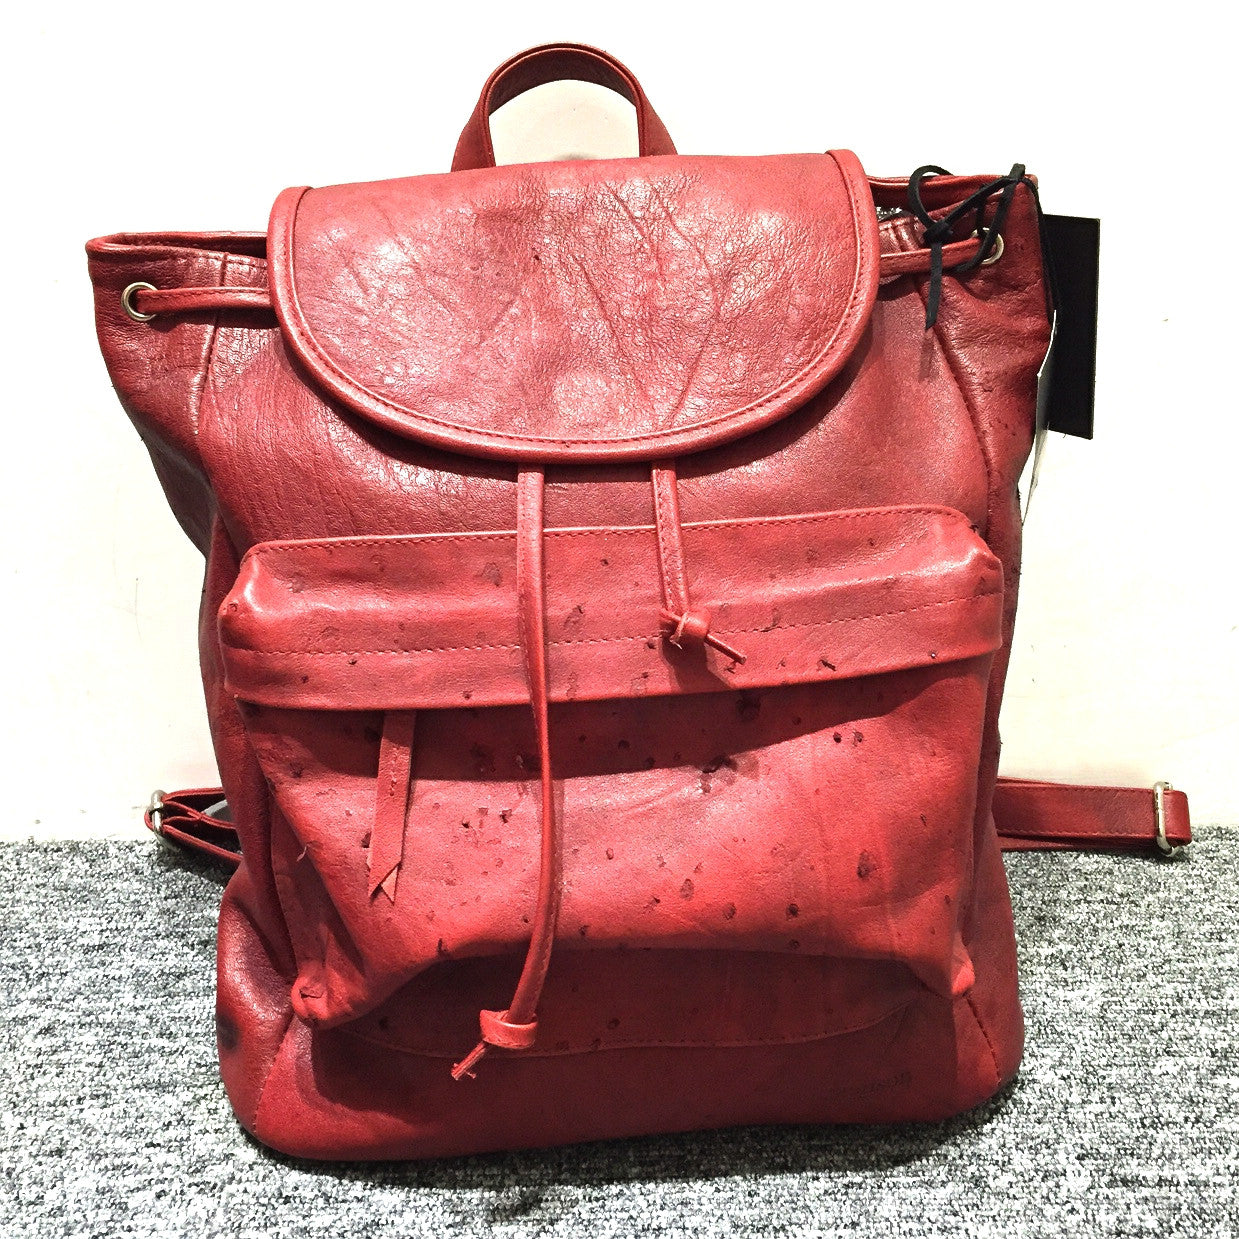 Henson Schoolyard Backpack- Red Kangaroo